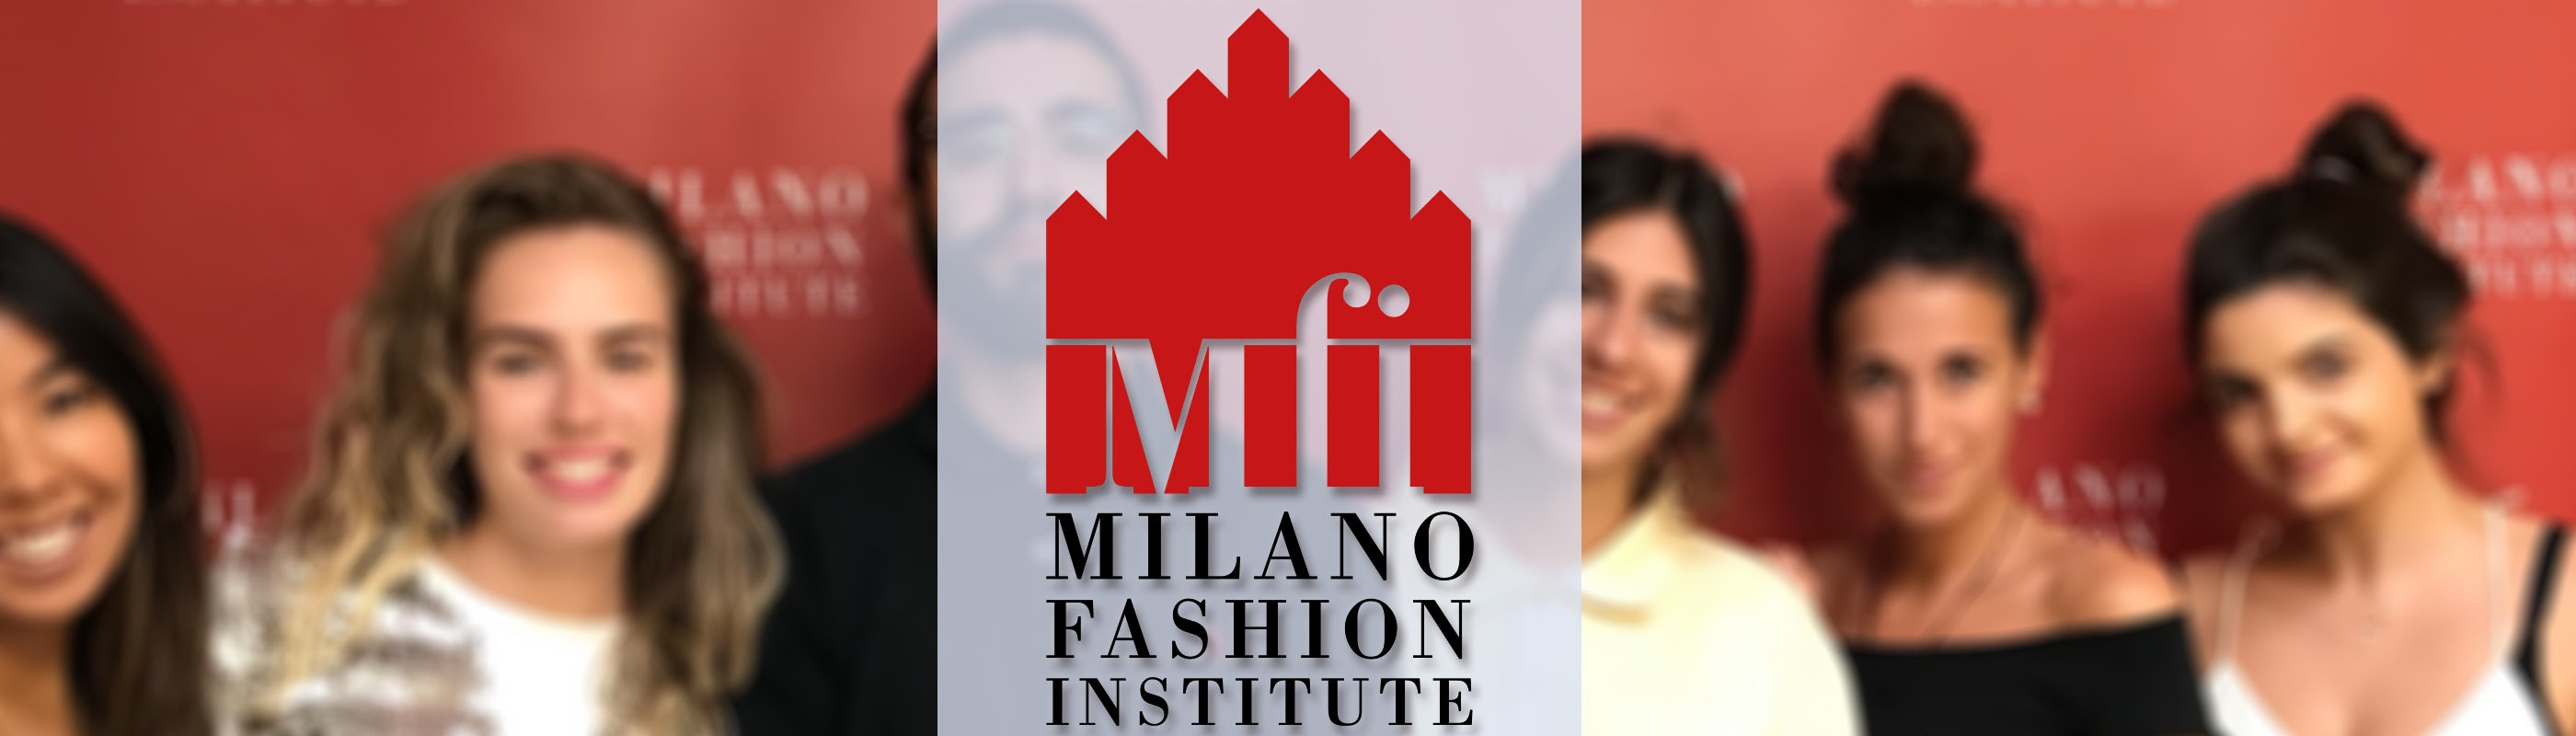 Profile image for Milano Fashion Institute